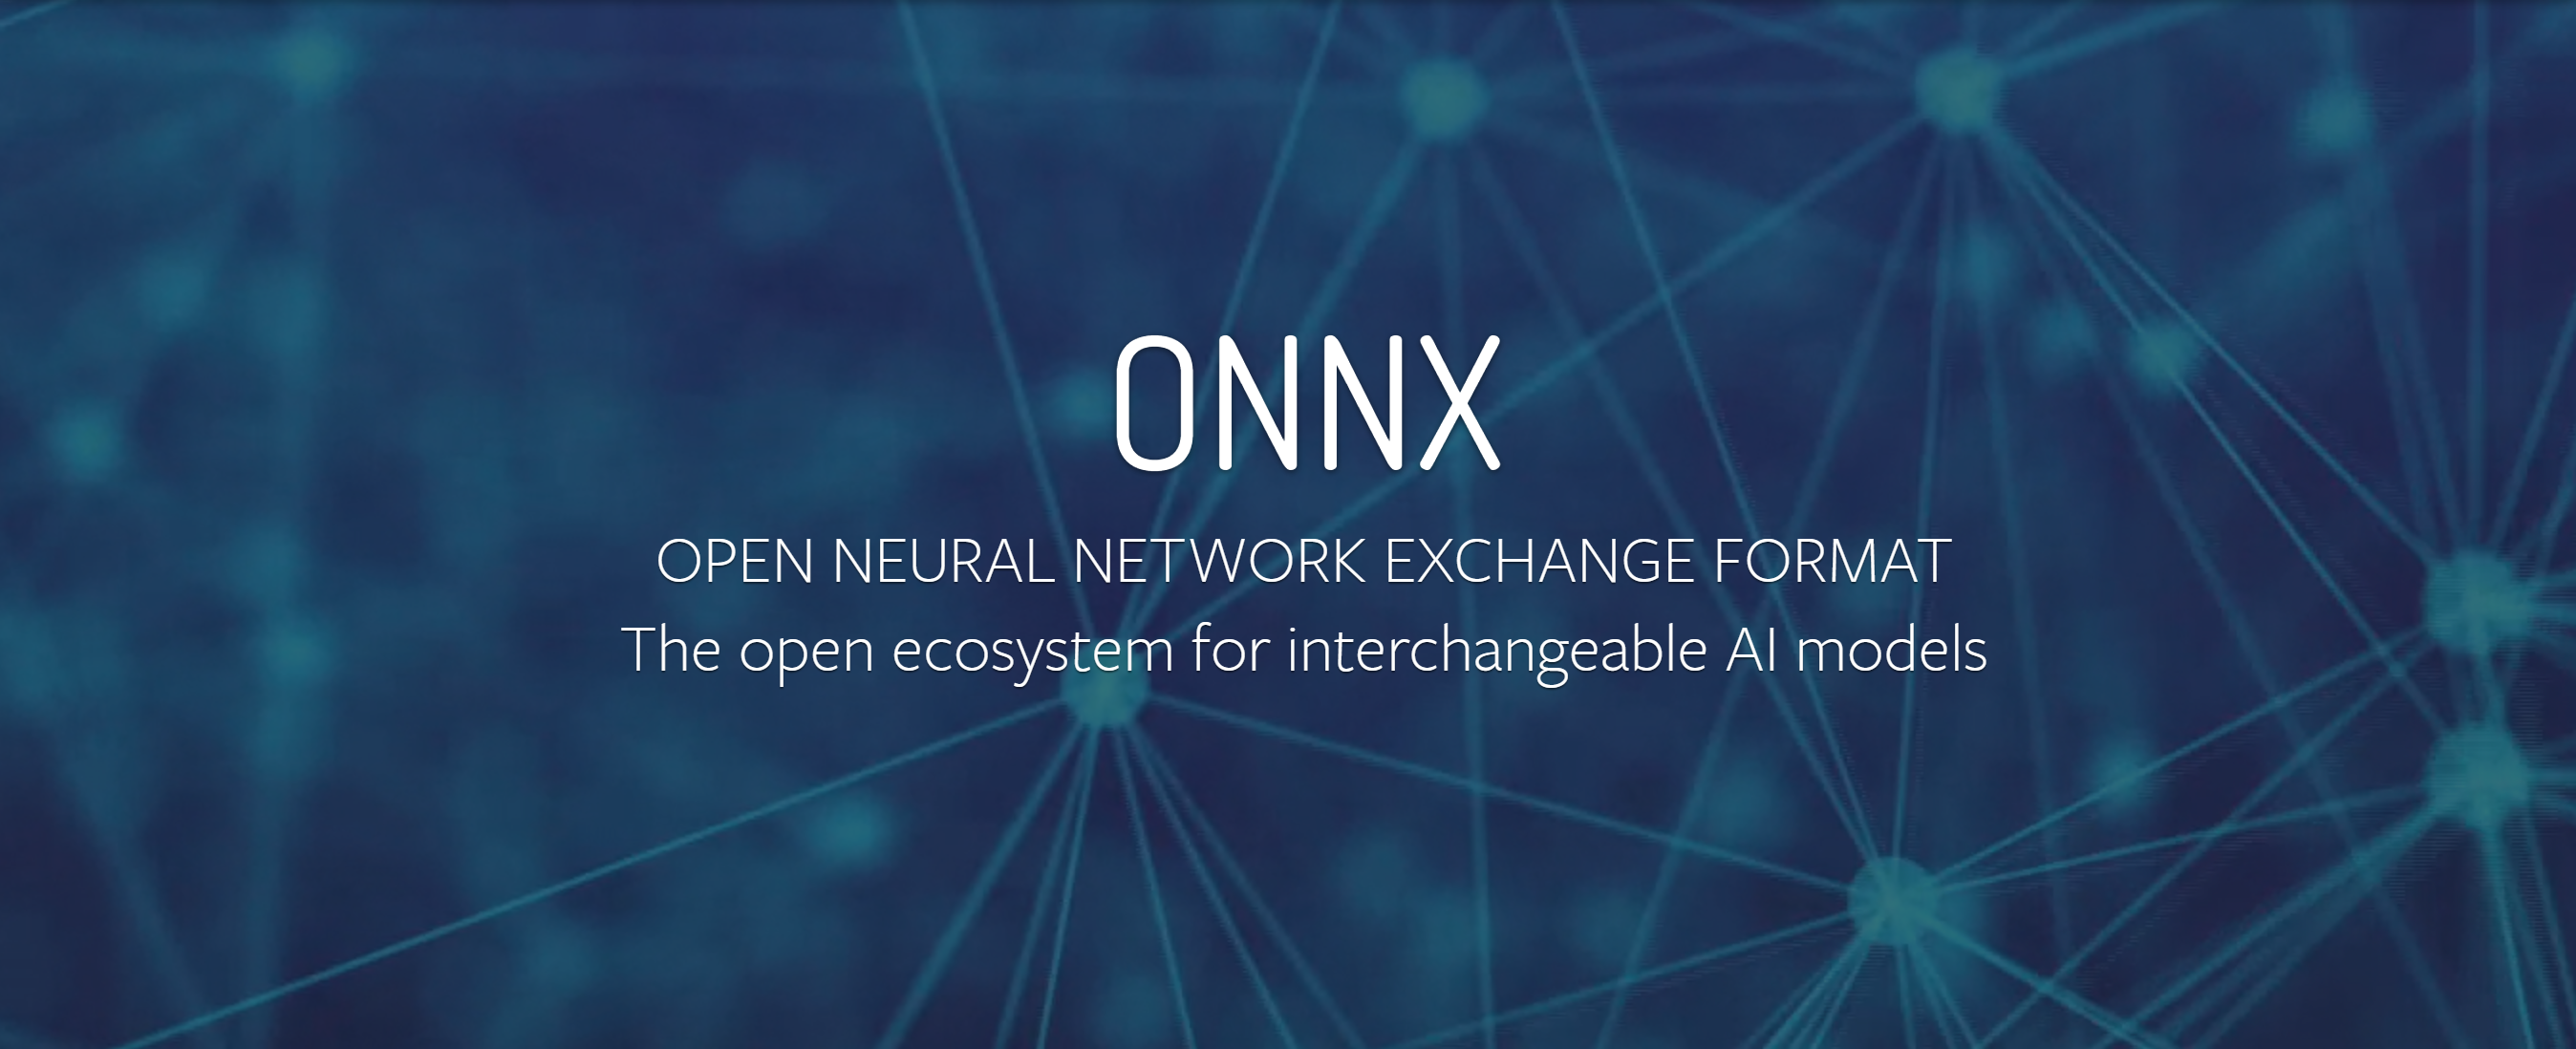 Tutorial: Detect objects using deep learning with ONNX and ML.NET